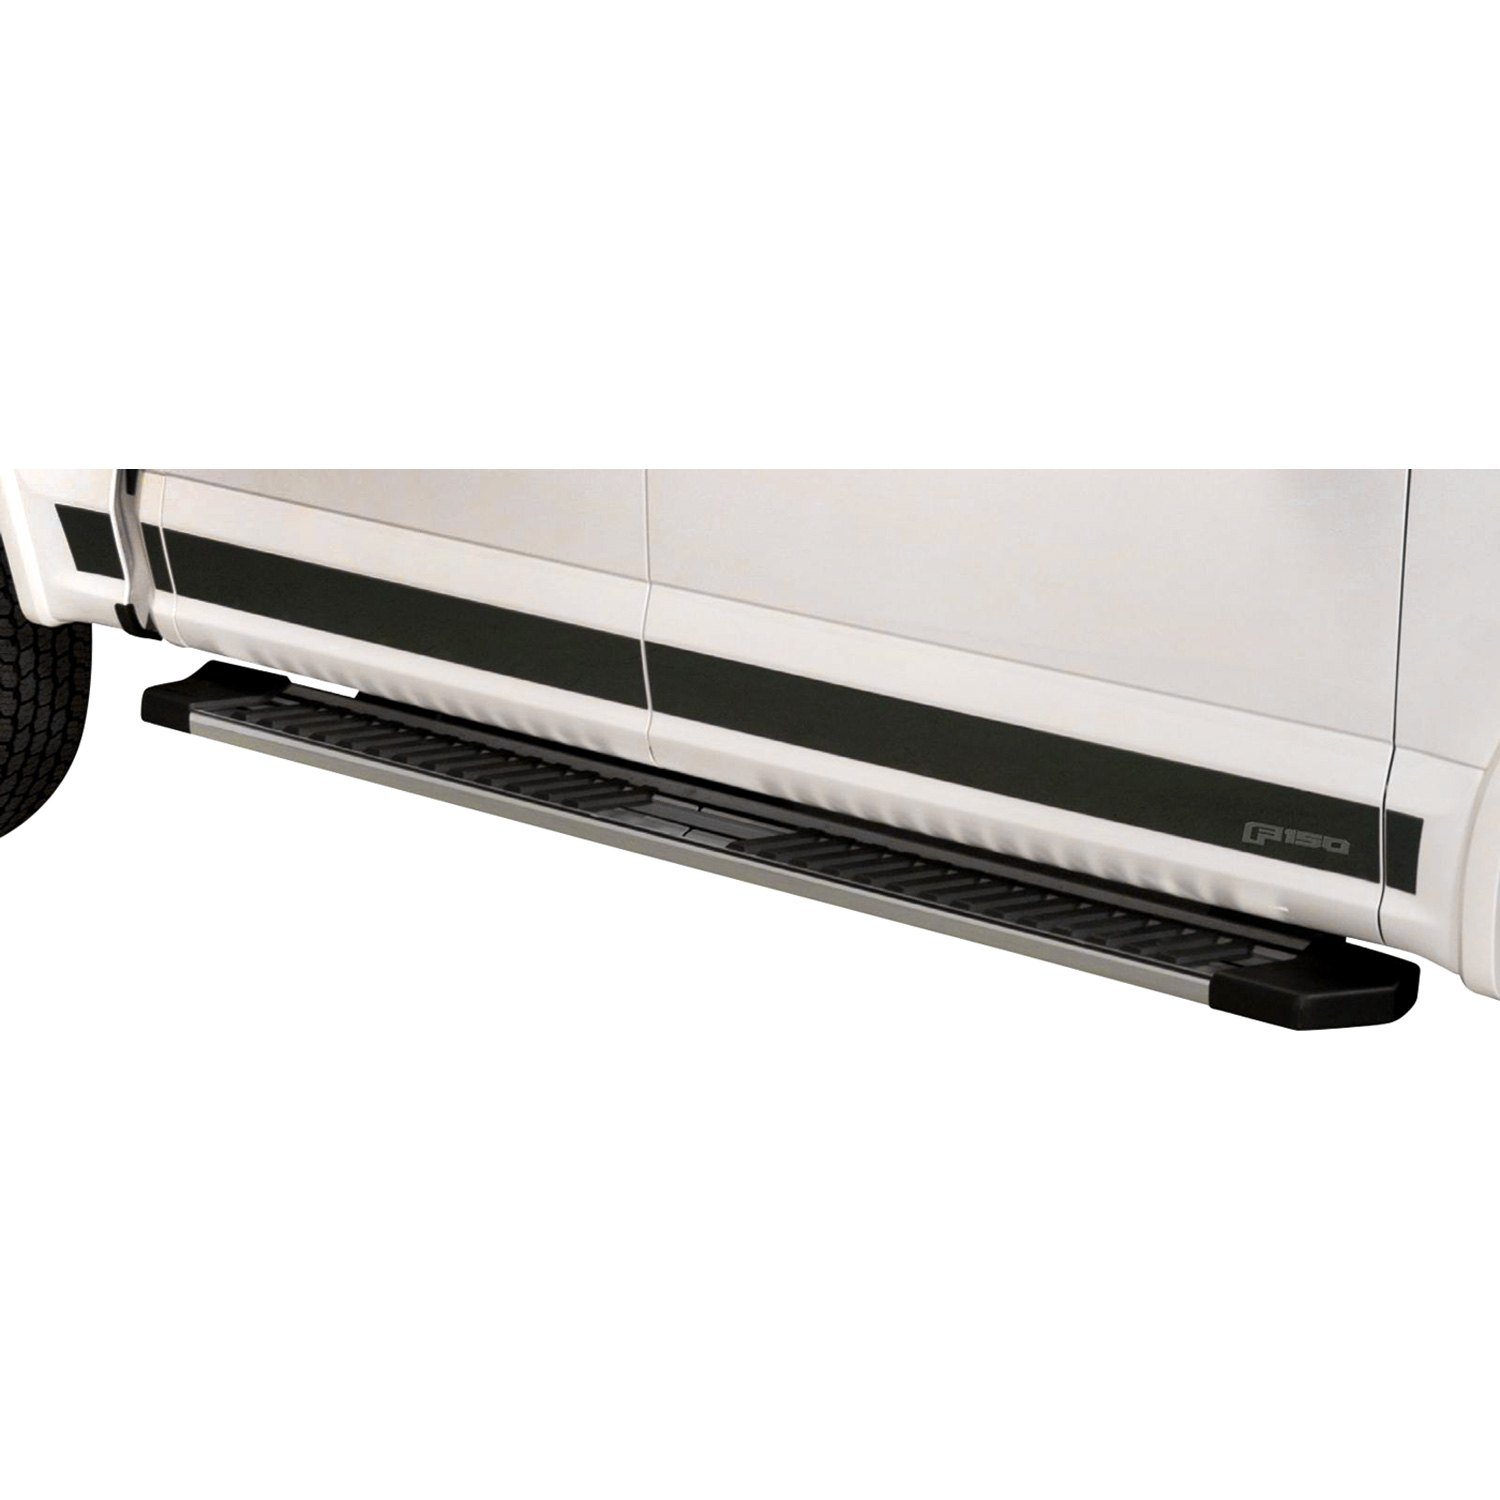 Ford F-150 2015 Ford Licensed Rocker Panel Covers